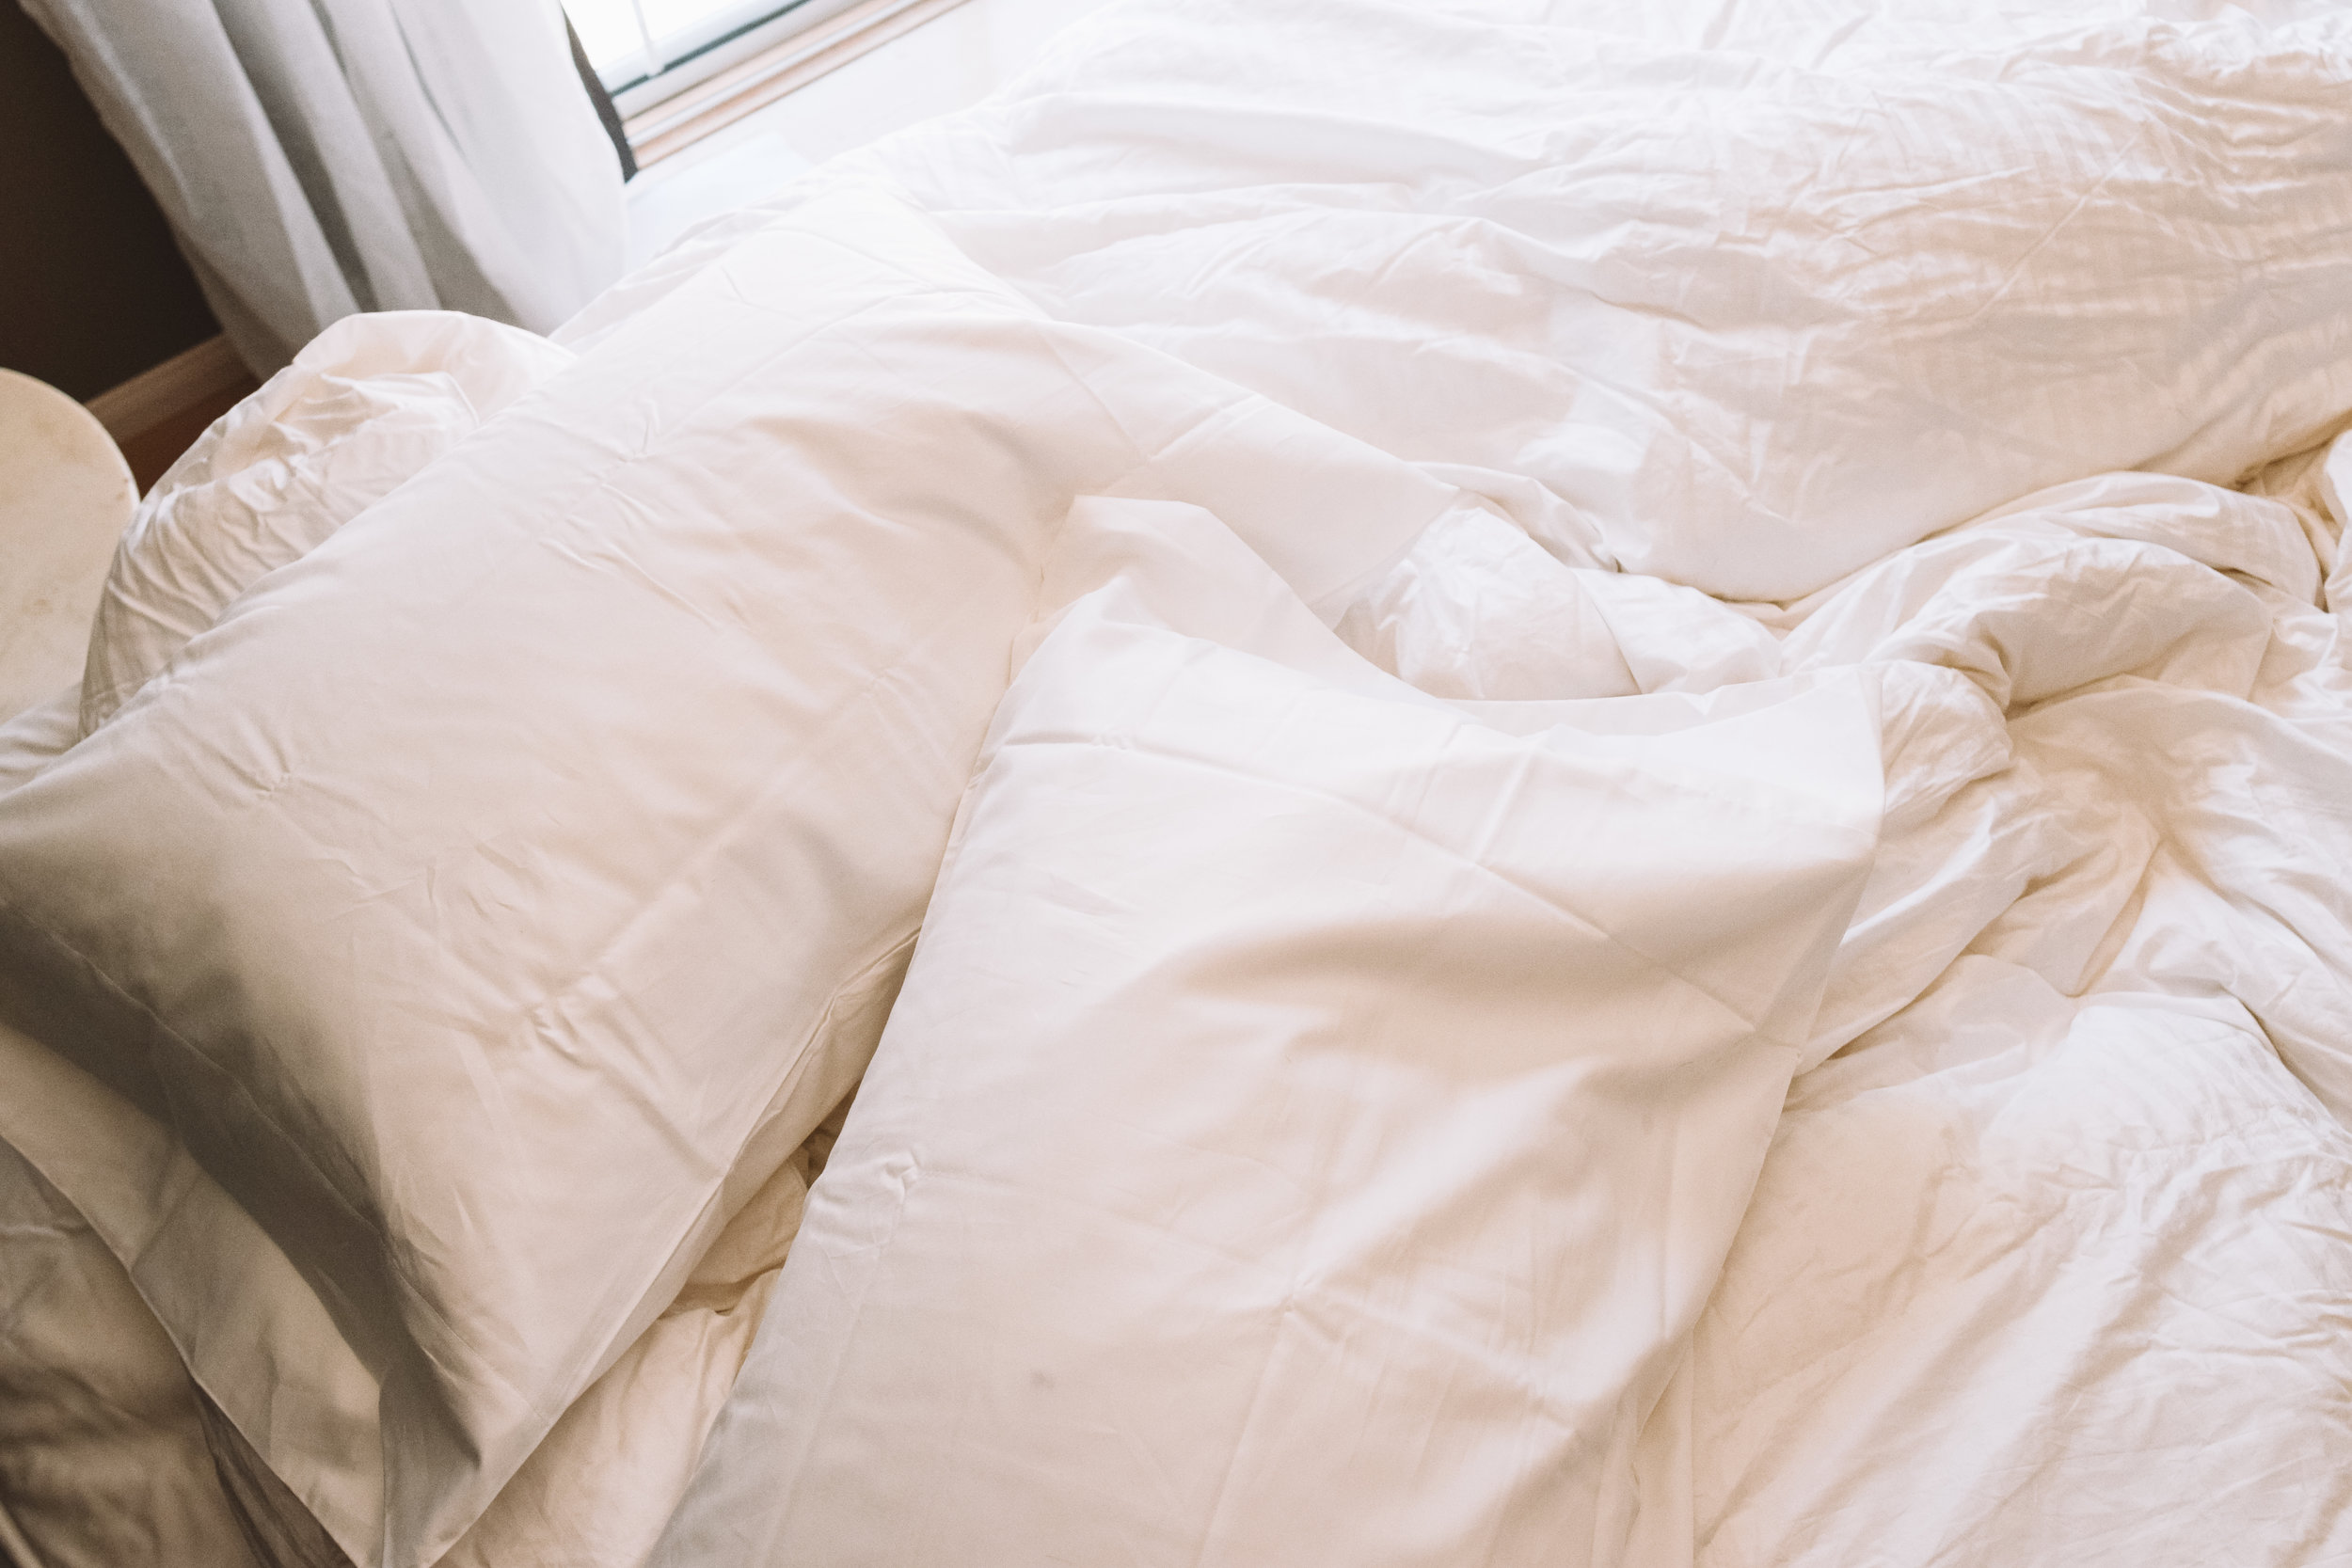 Online Bedding -- Down Comforter, Down Pillows - The Company Store -- The Overwhelmed Mommy Blogger